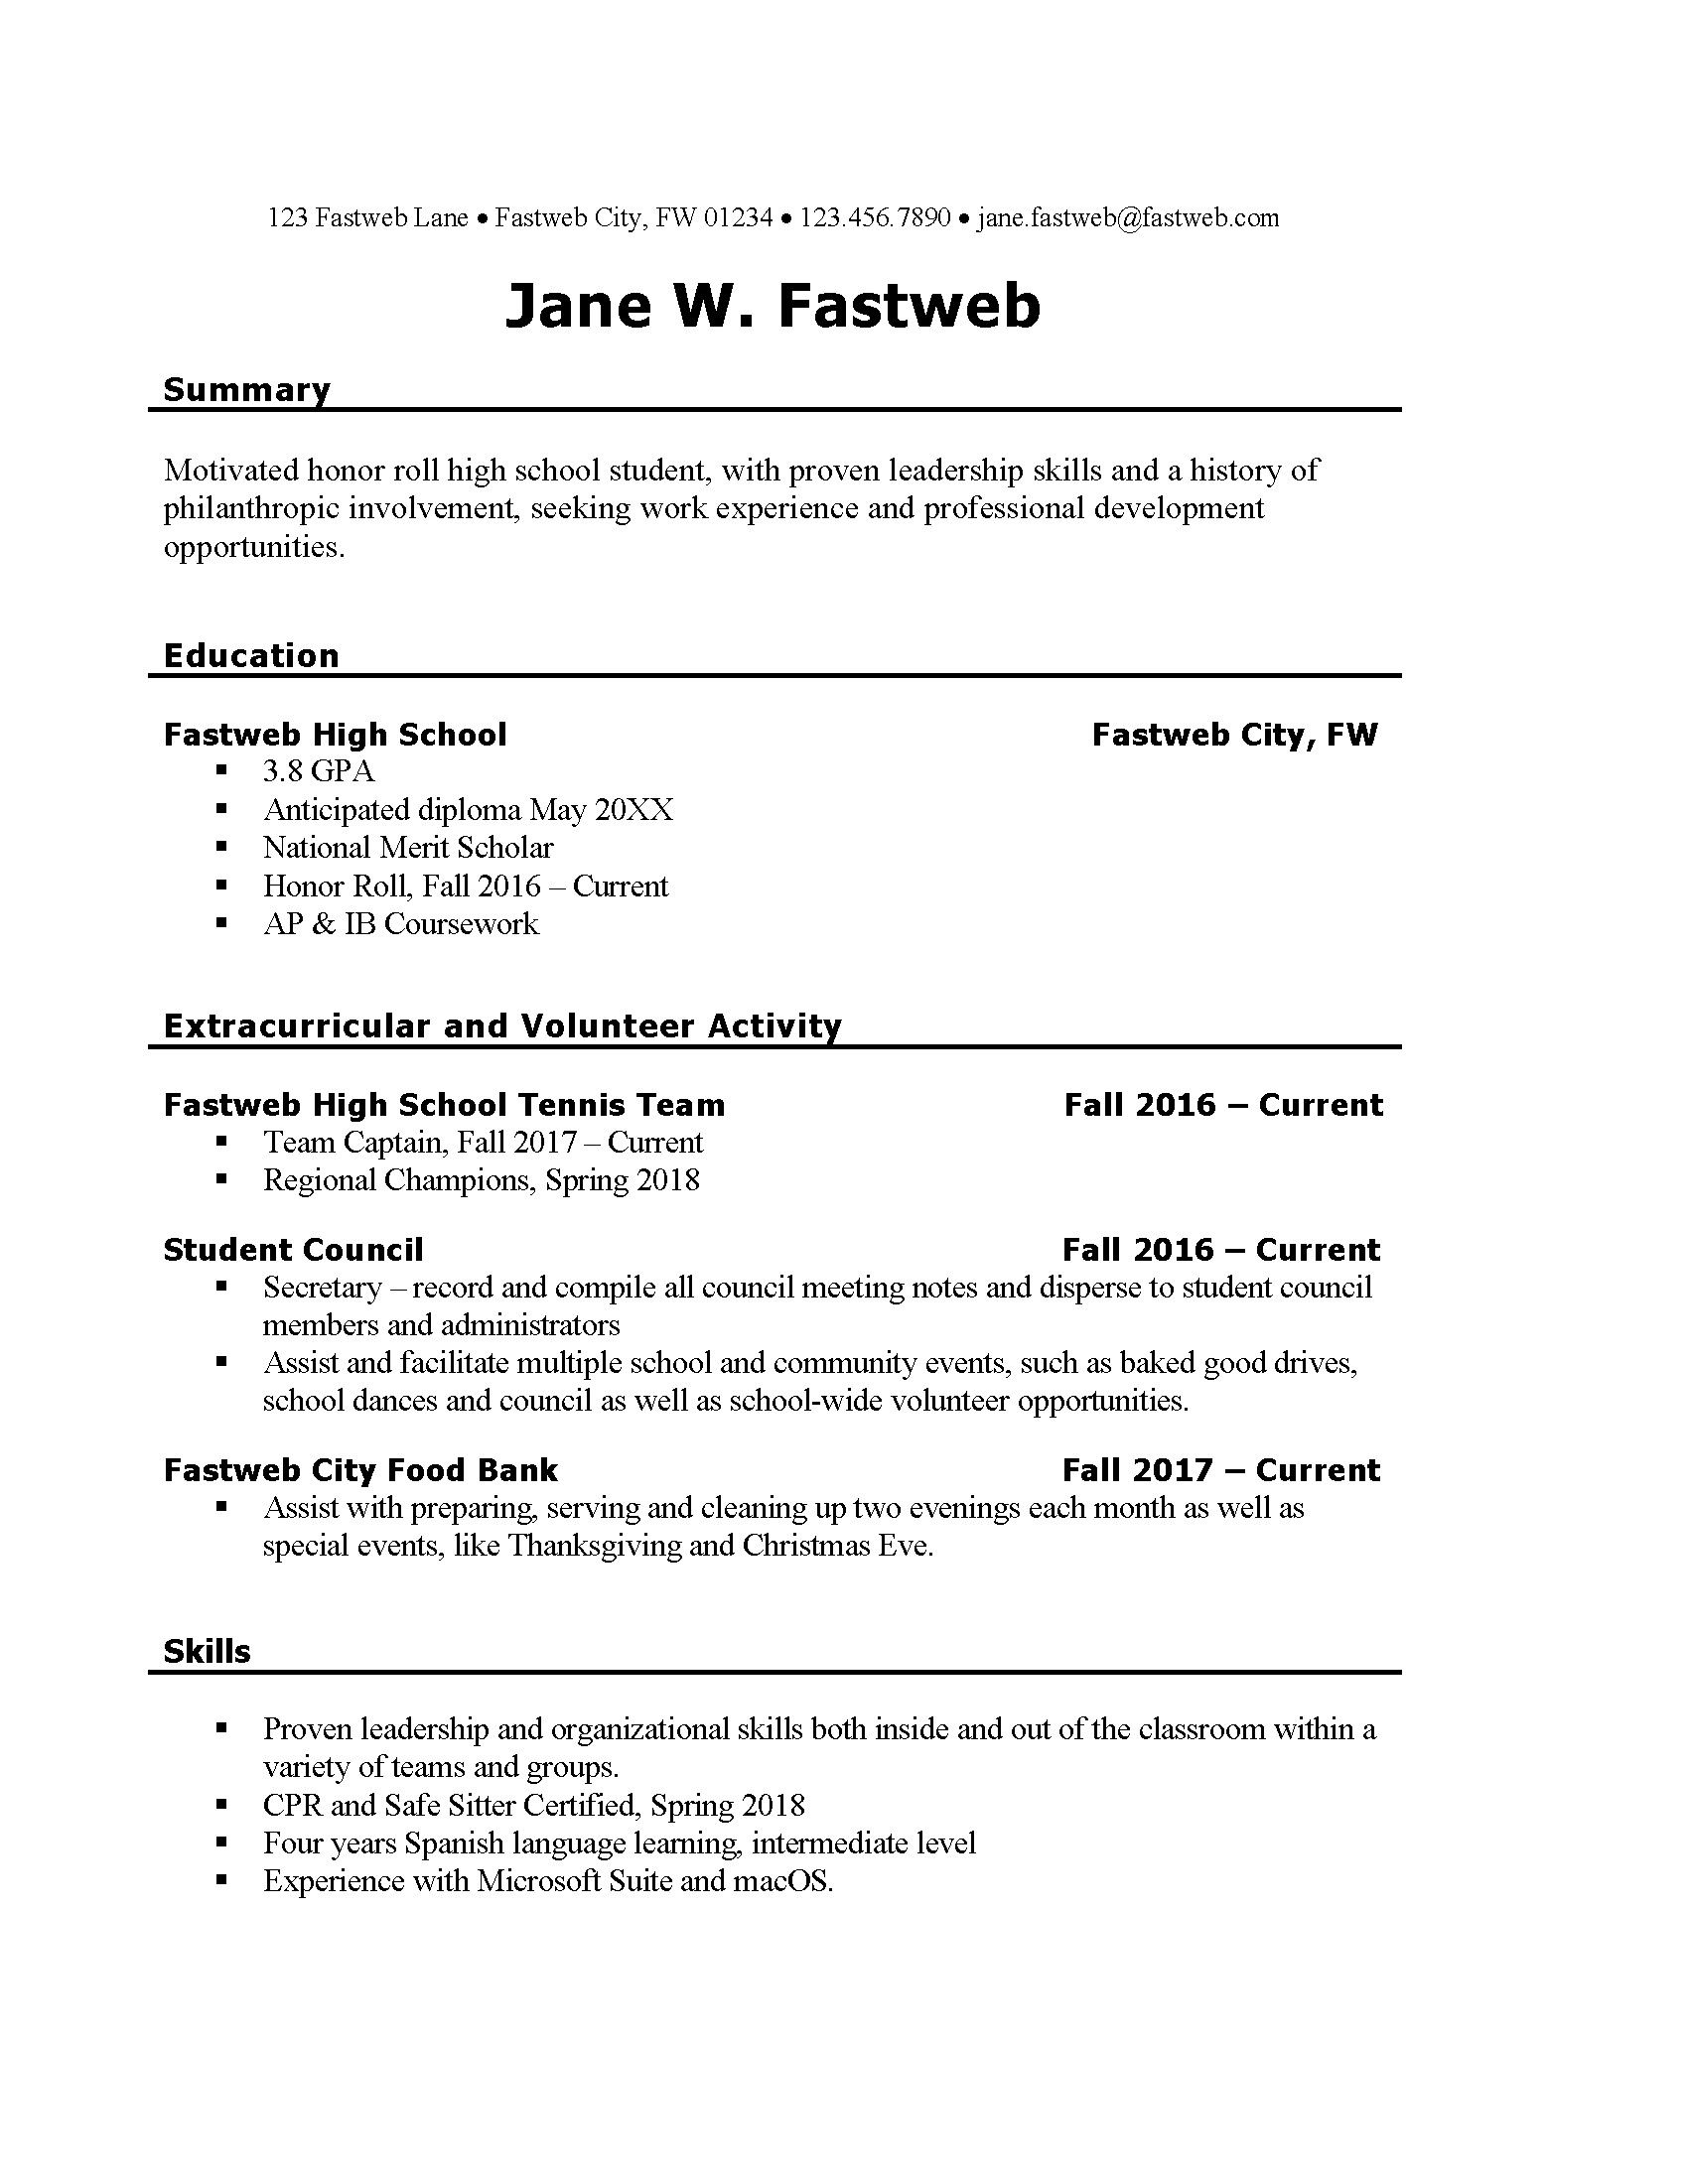 Pay someone to Write My Resume Best First Part Time Job